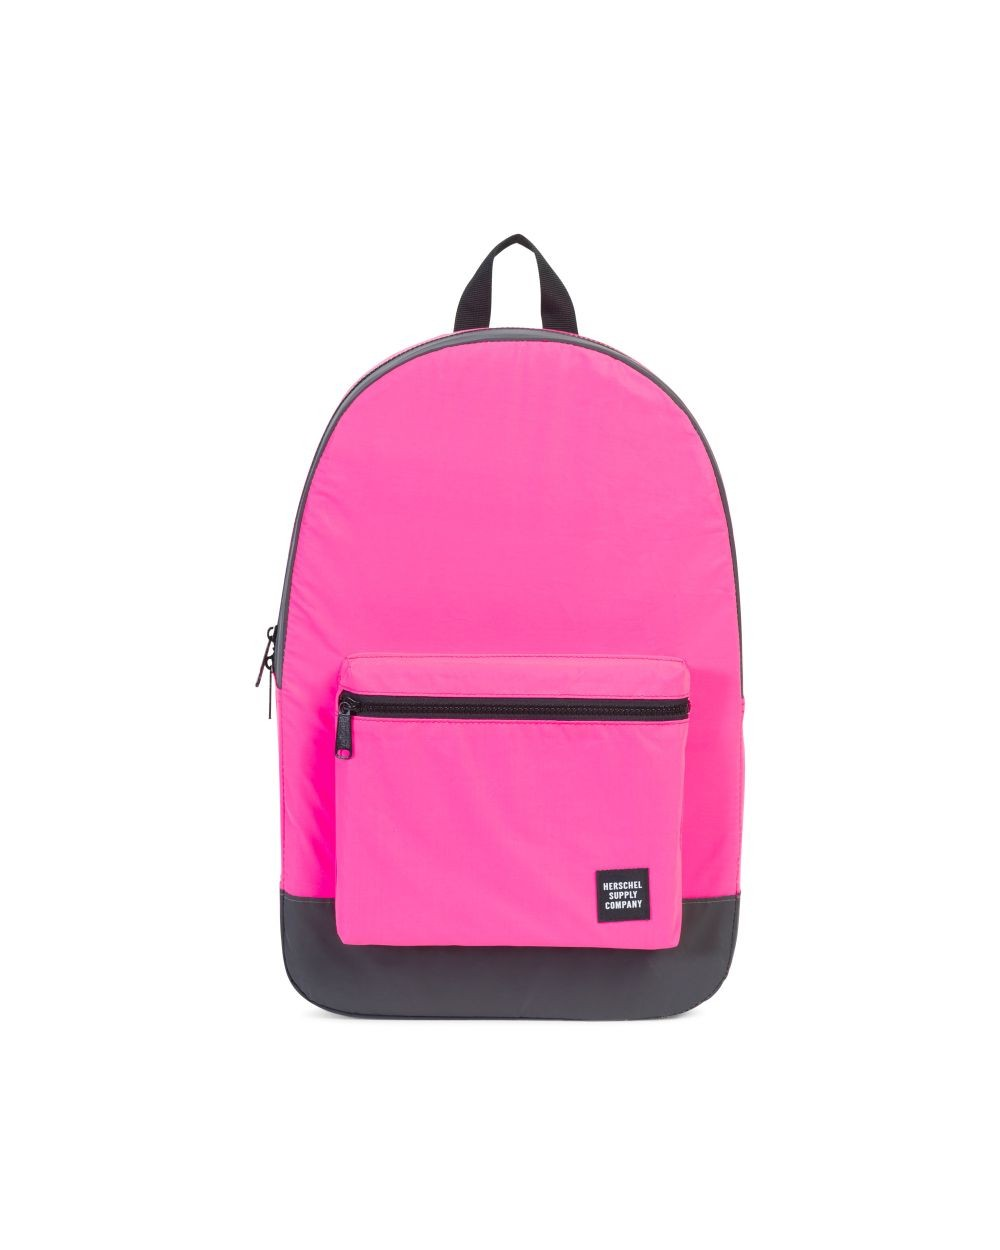 SAC A DOS DAYPACK ROSE FLUO HERSECHEL